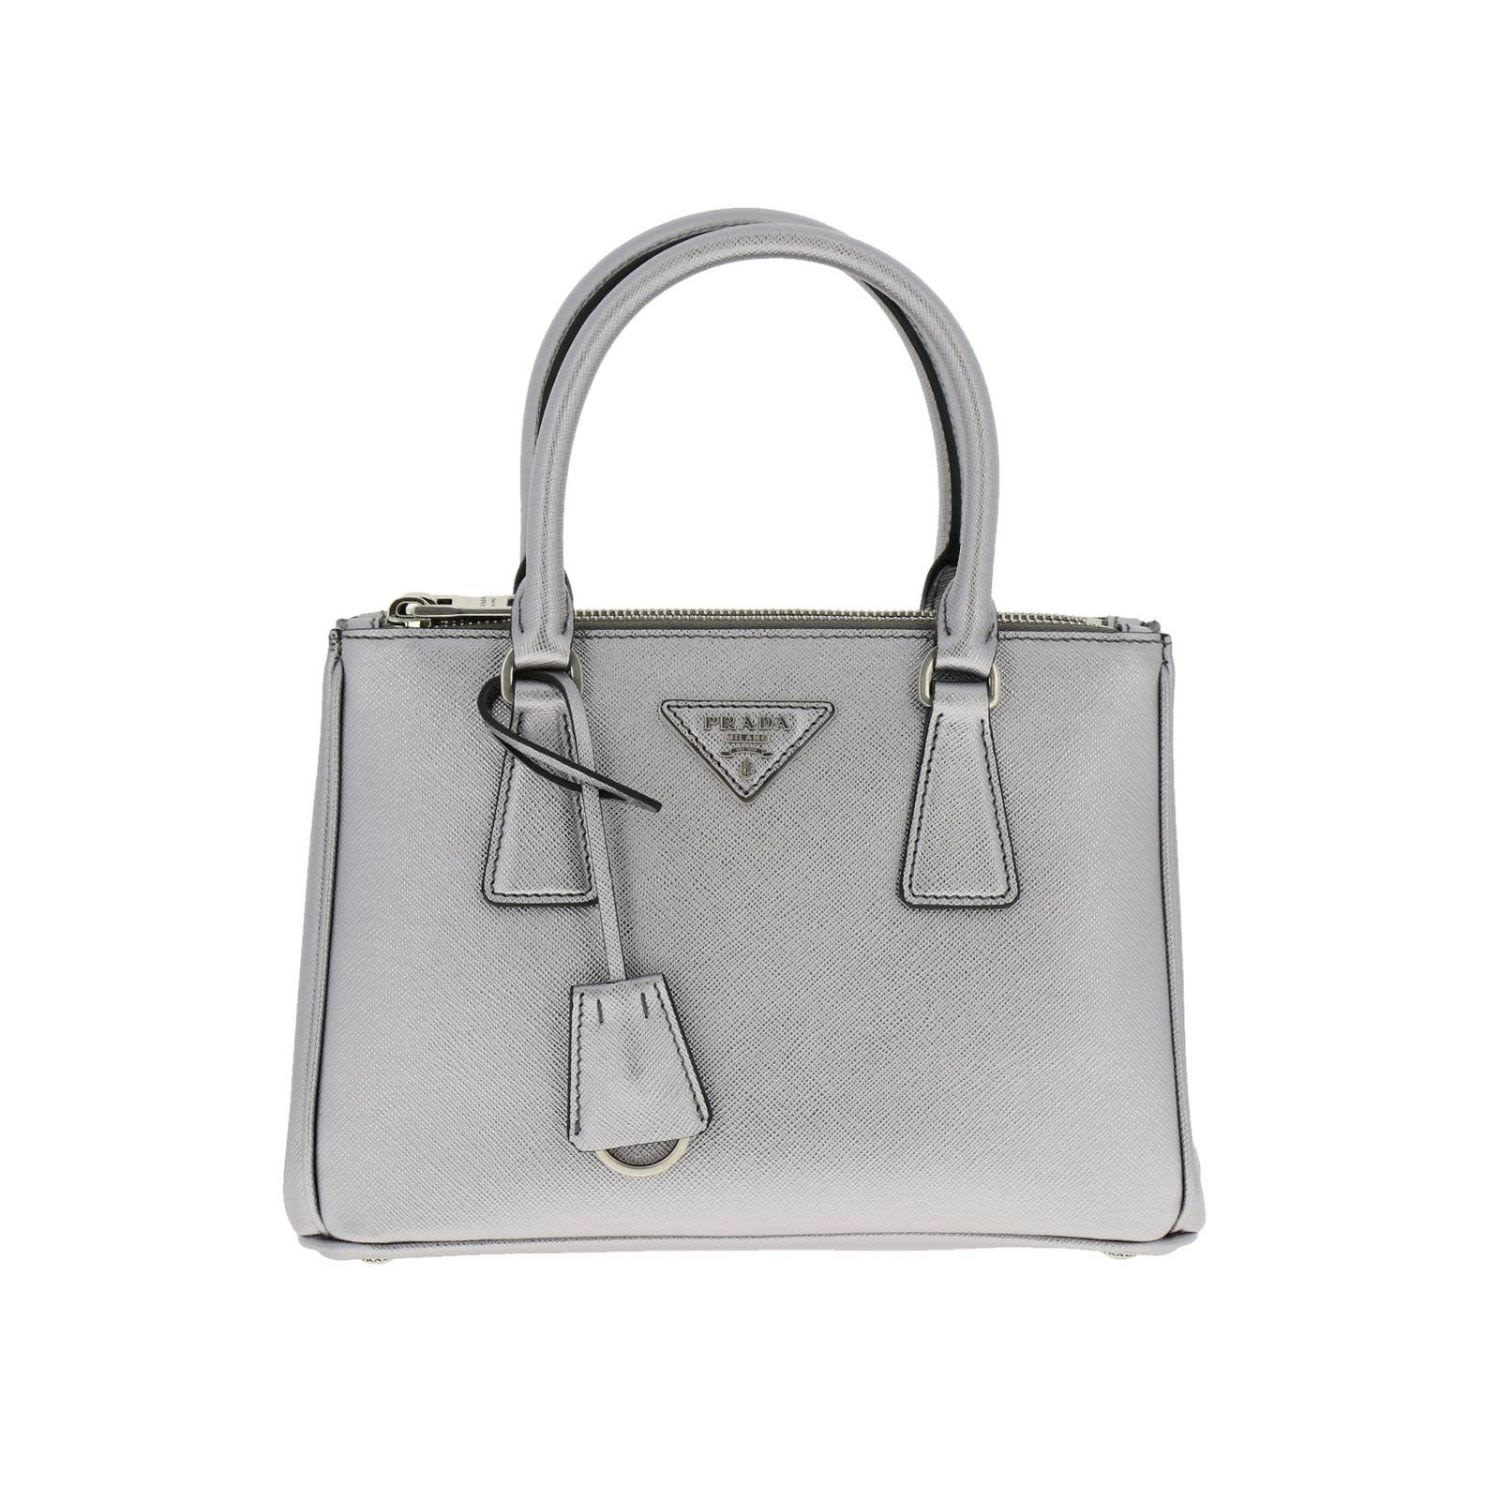 36ff9f7cc1 promo code for prada astrale saffiano lux leather mini bag bl0851 0db3f  2a6be  spain prada mini bag shoulder bag women prada silver 0a27d c8193